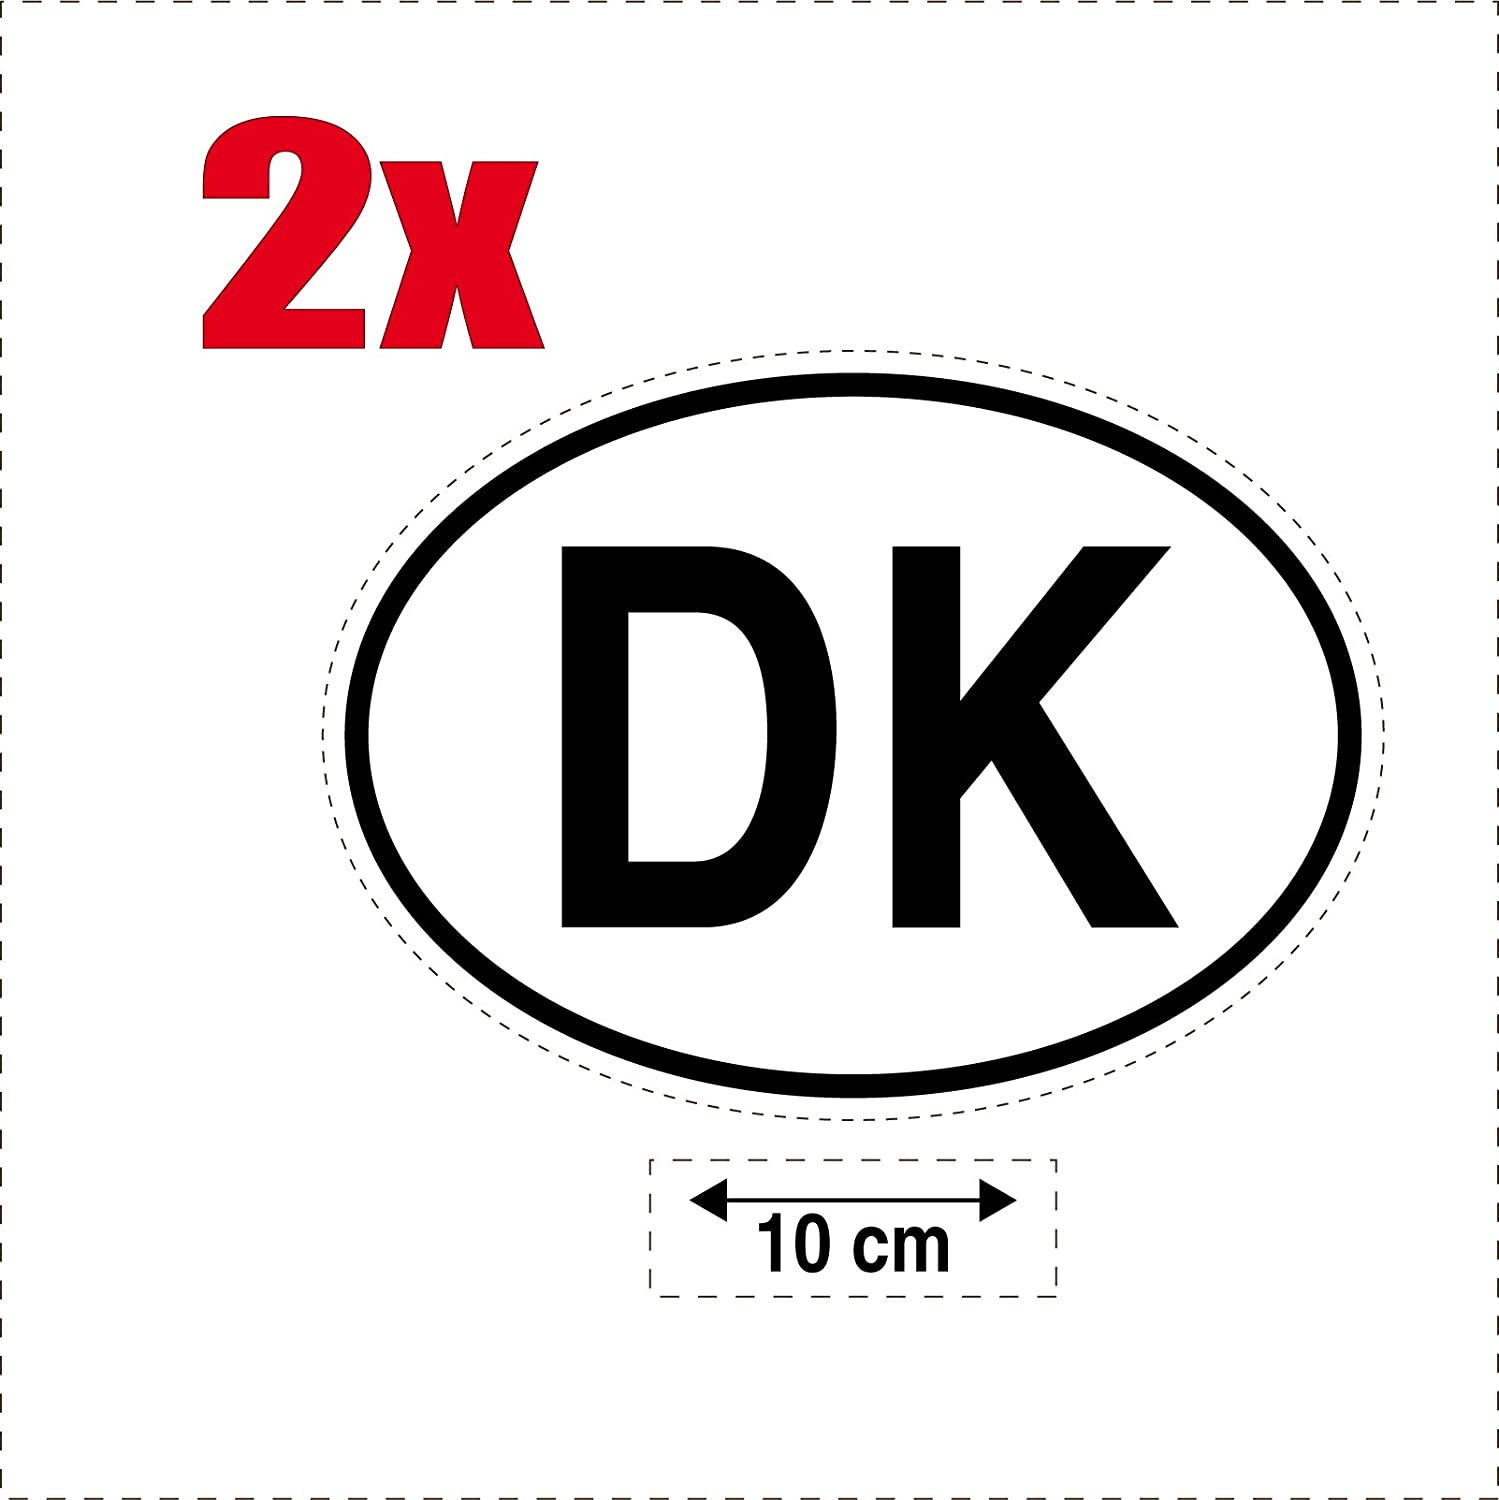 DK Denmark 2x Oval Country Flag Code Self-Adhesive Stickers for Cars and Motorbikes